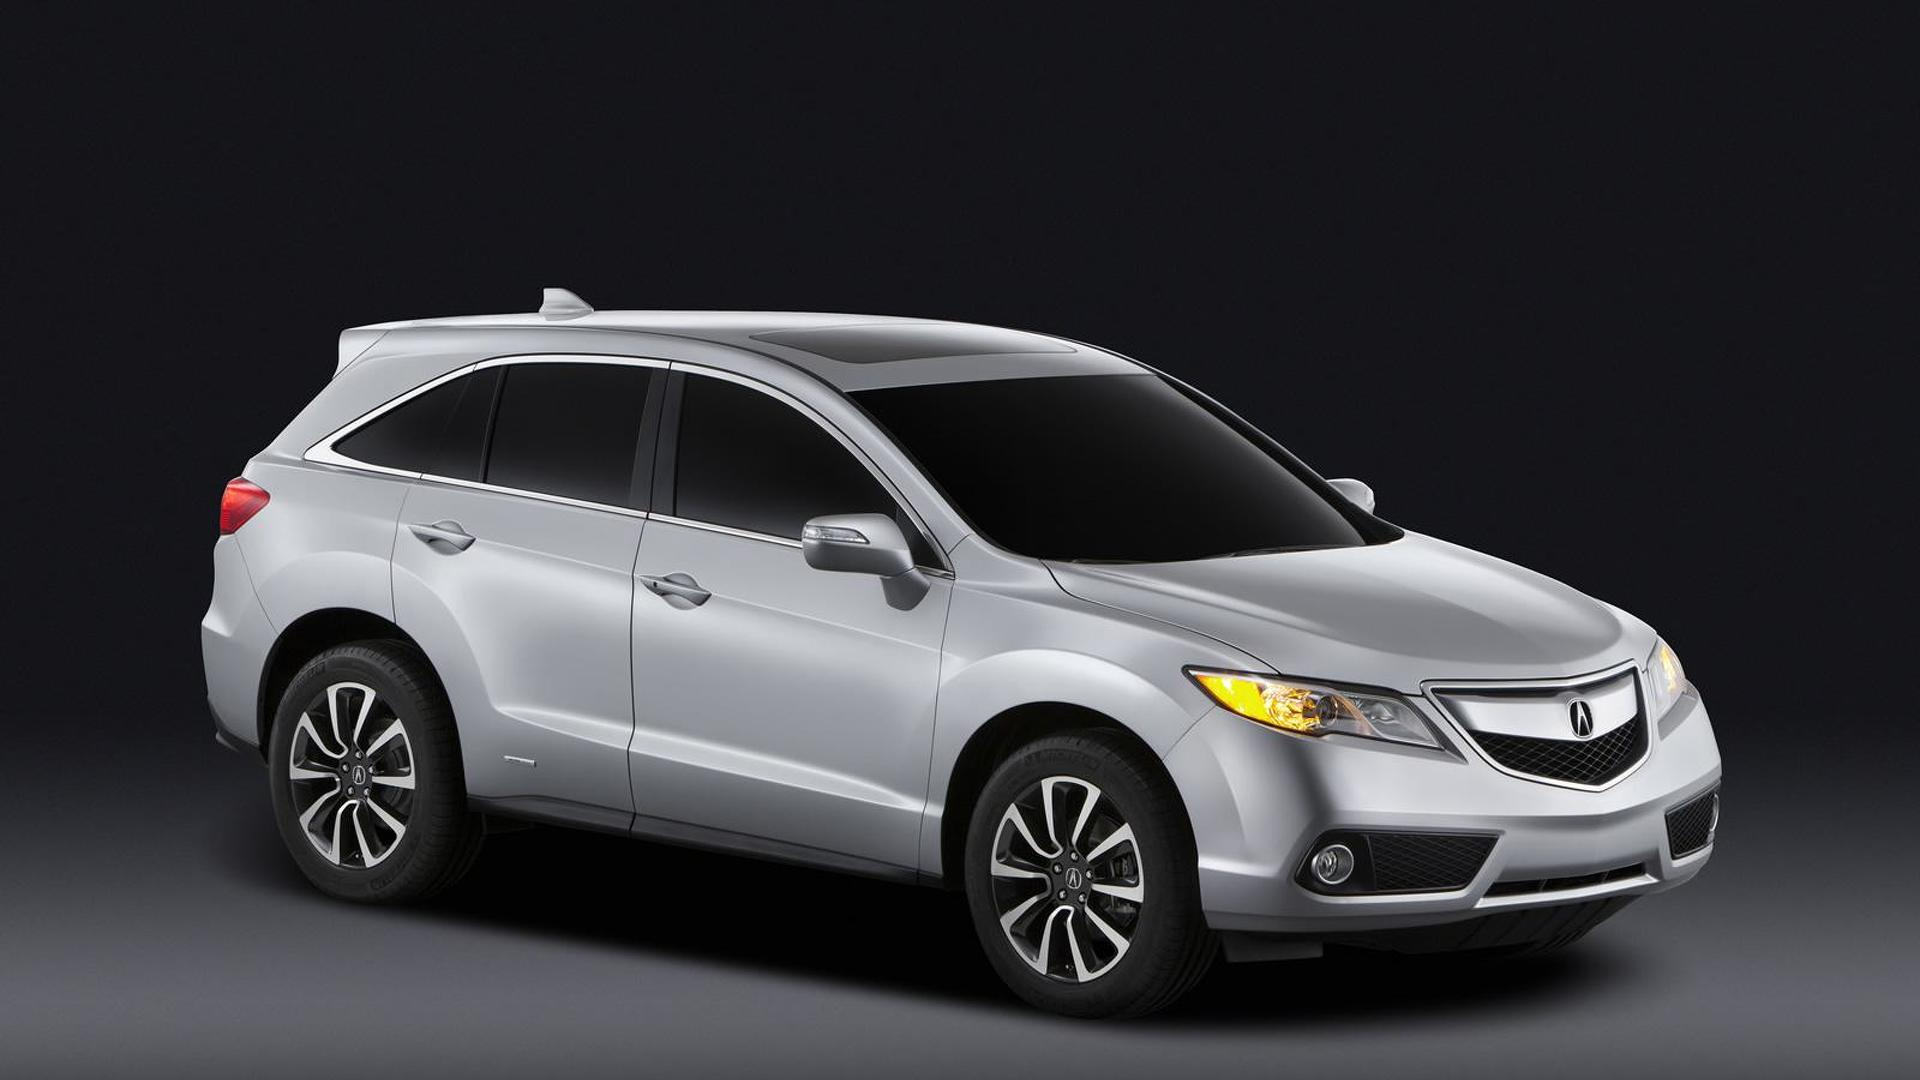 2013 Acura ILX & RDX headed for a Chicago unveiling